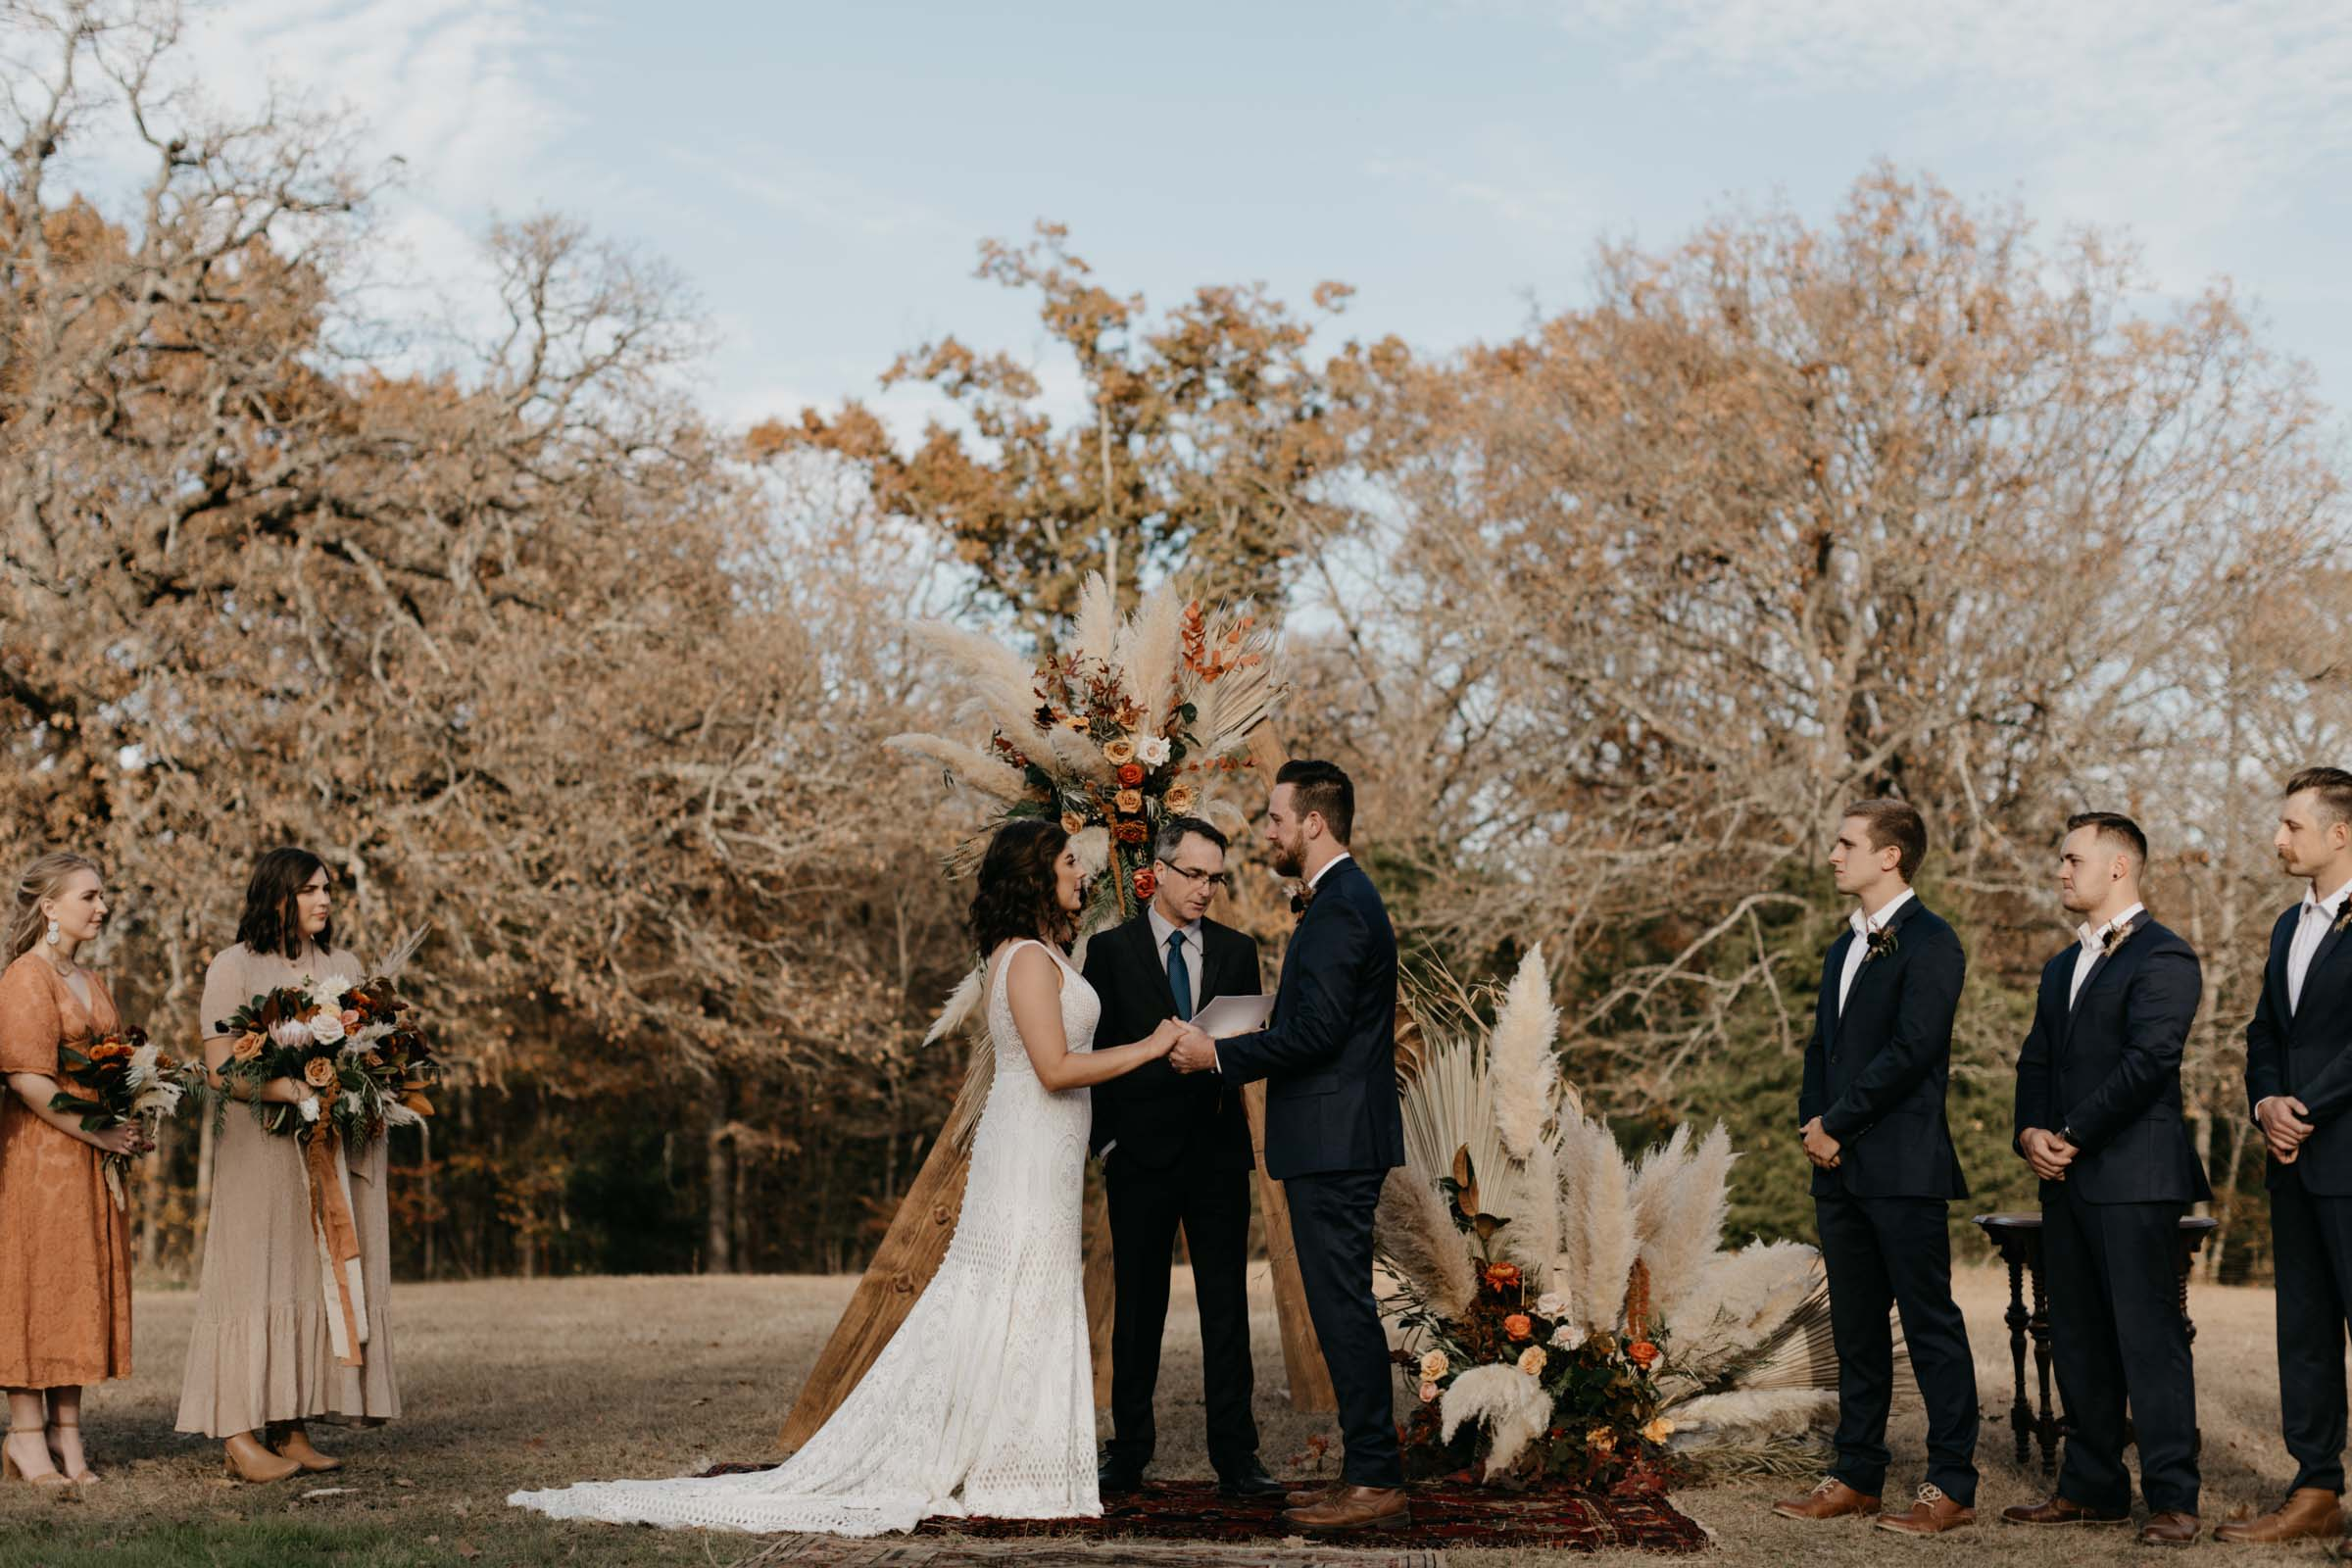 Bride and groom facing each other and holding hands during boho outdoor wedding ceremony